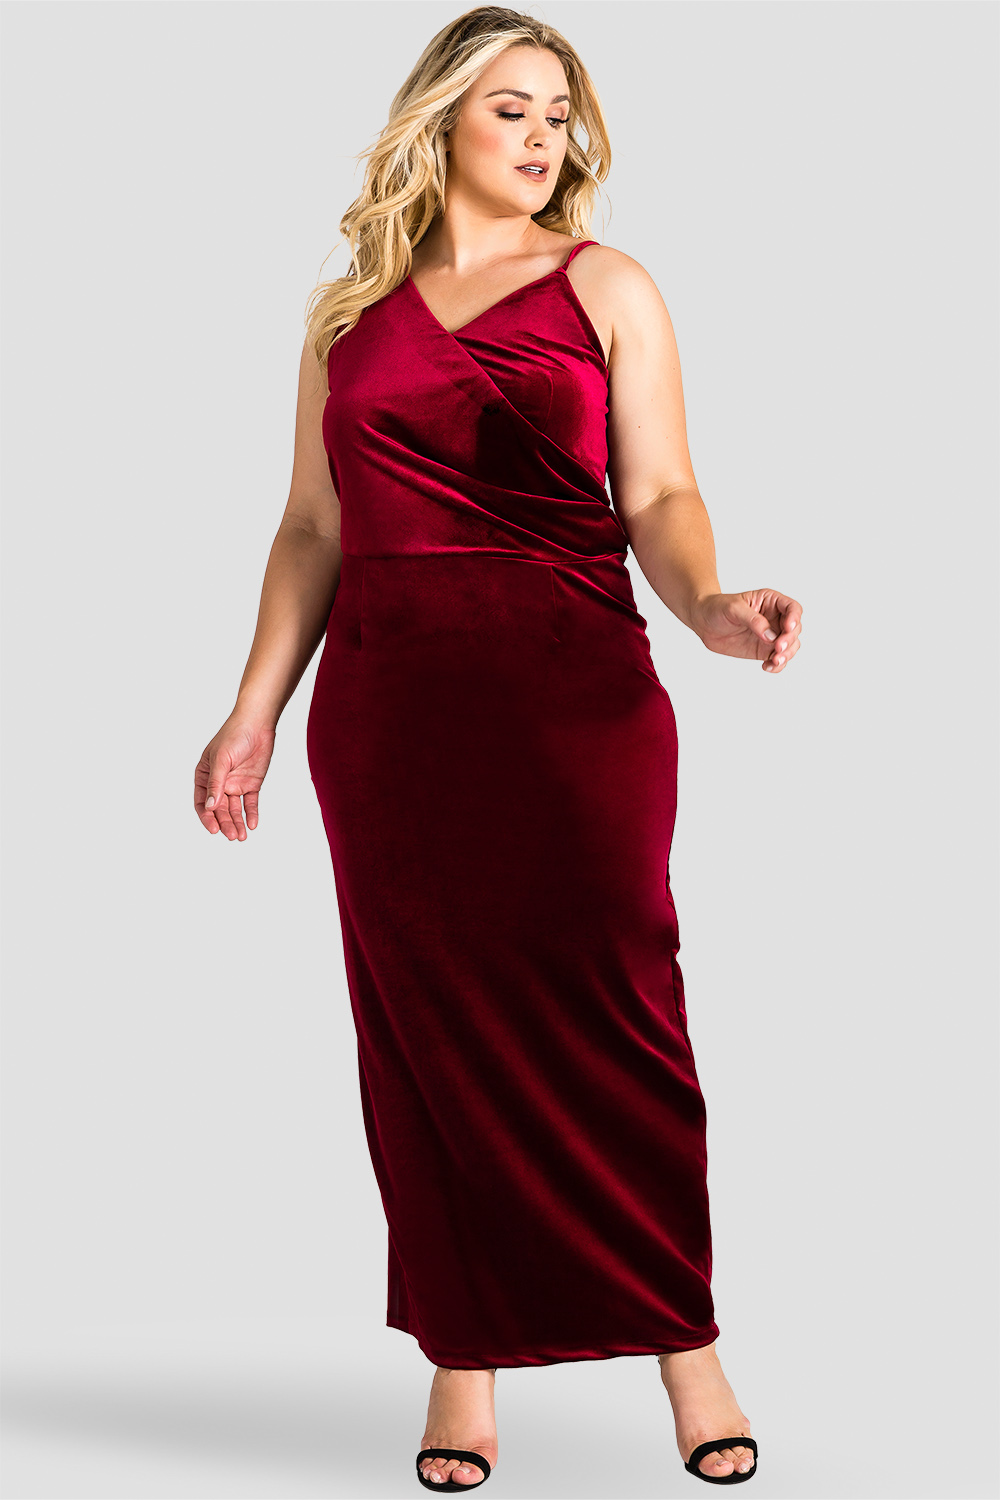 a7f48cbdab5 Standards   Practices Plus Size Burgundy Red Velvet Maxi Dress. Sale. now.  1 6